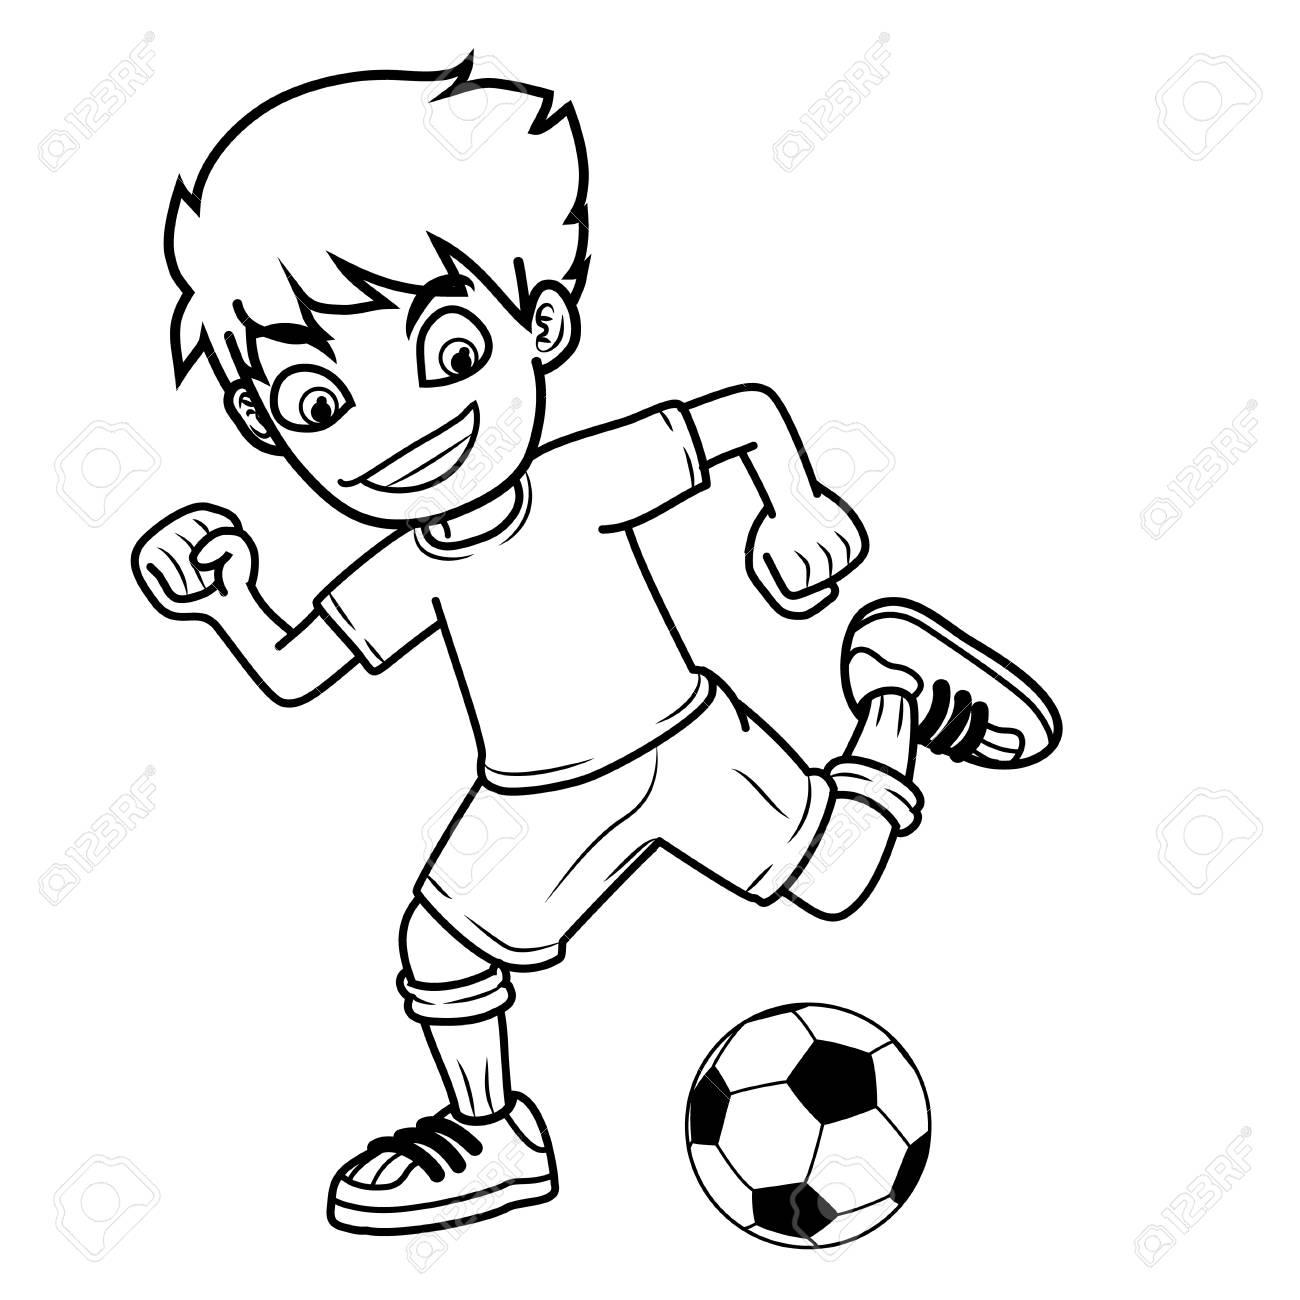 Football Drawing Image